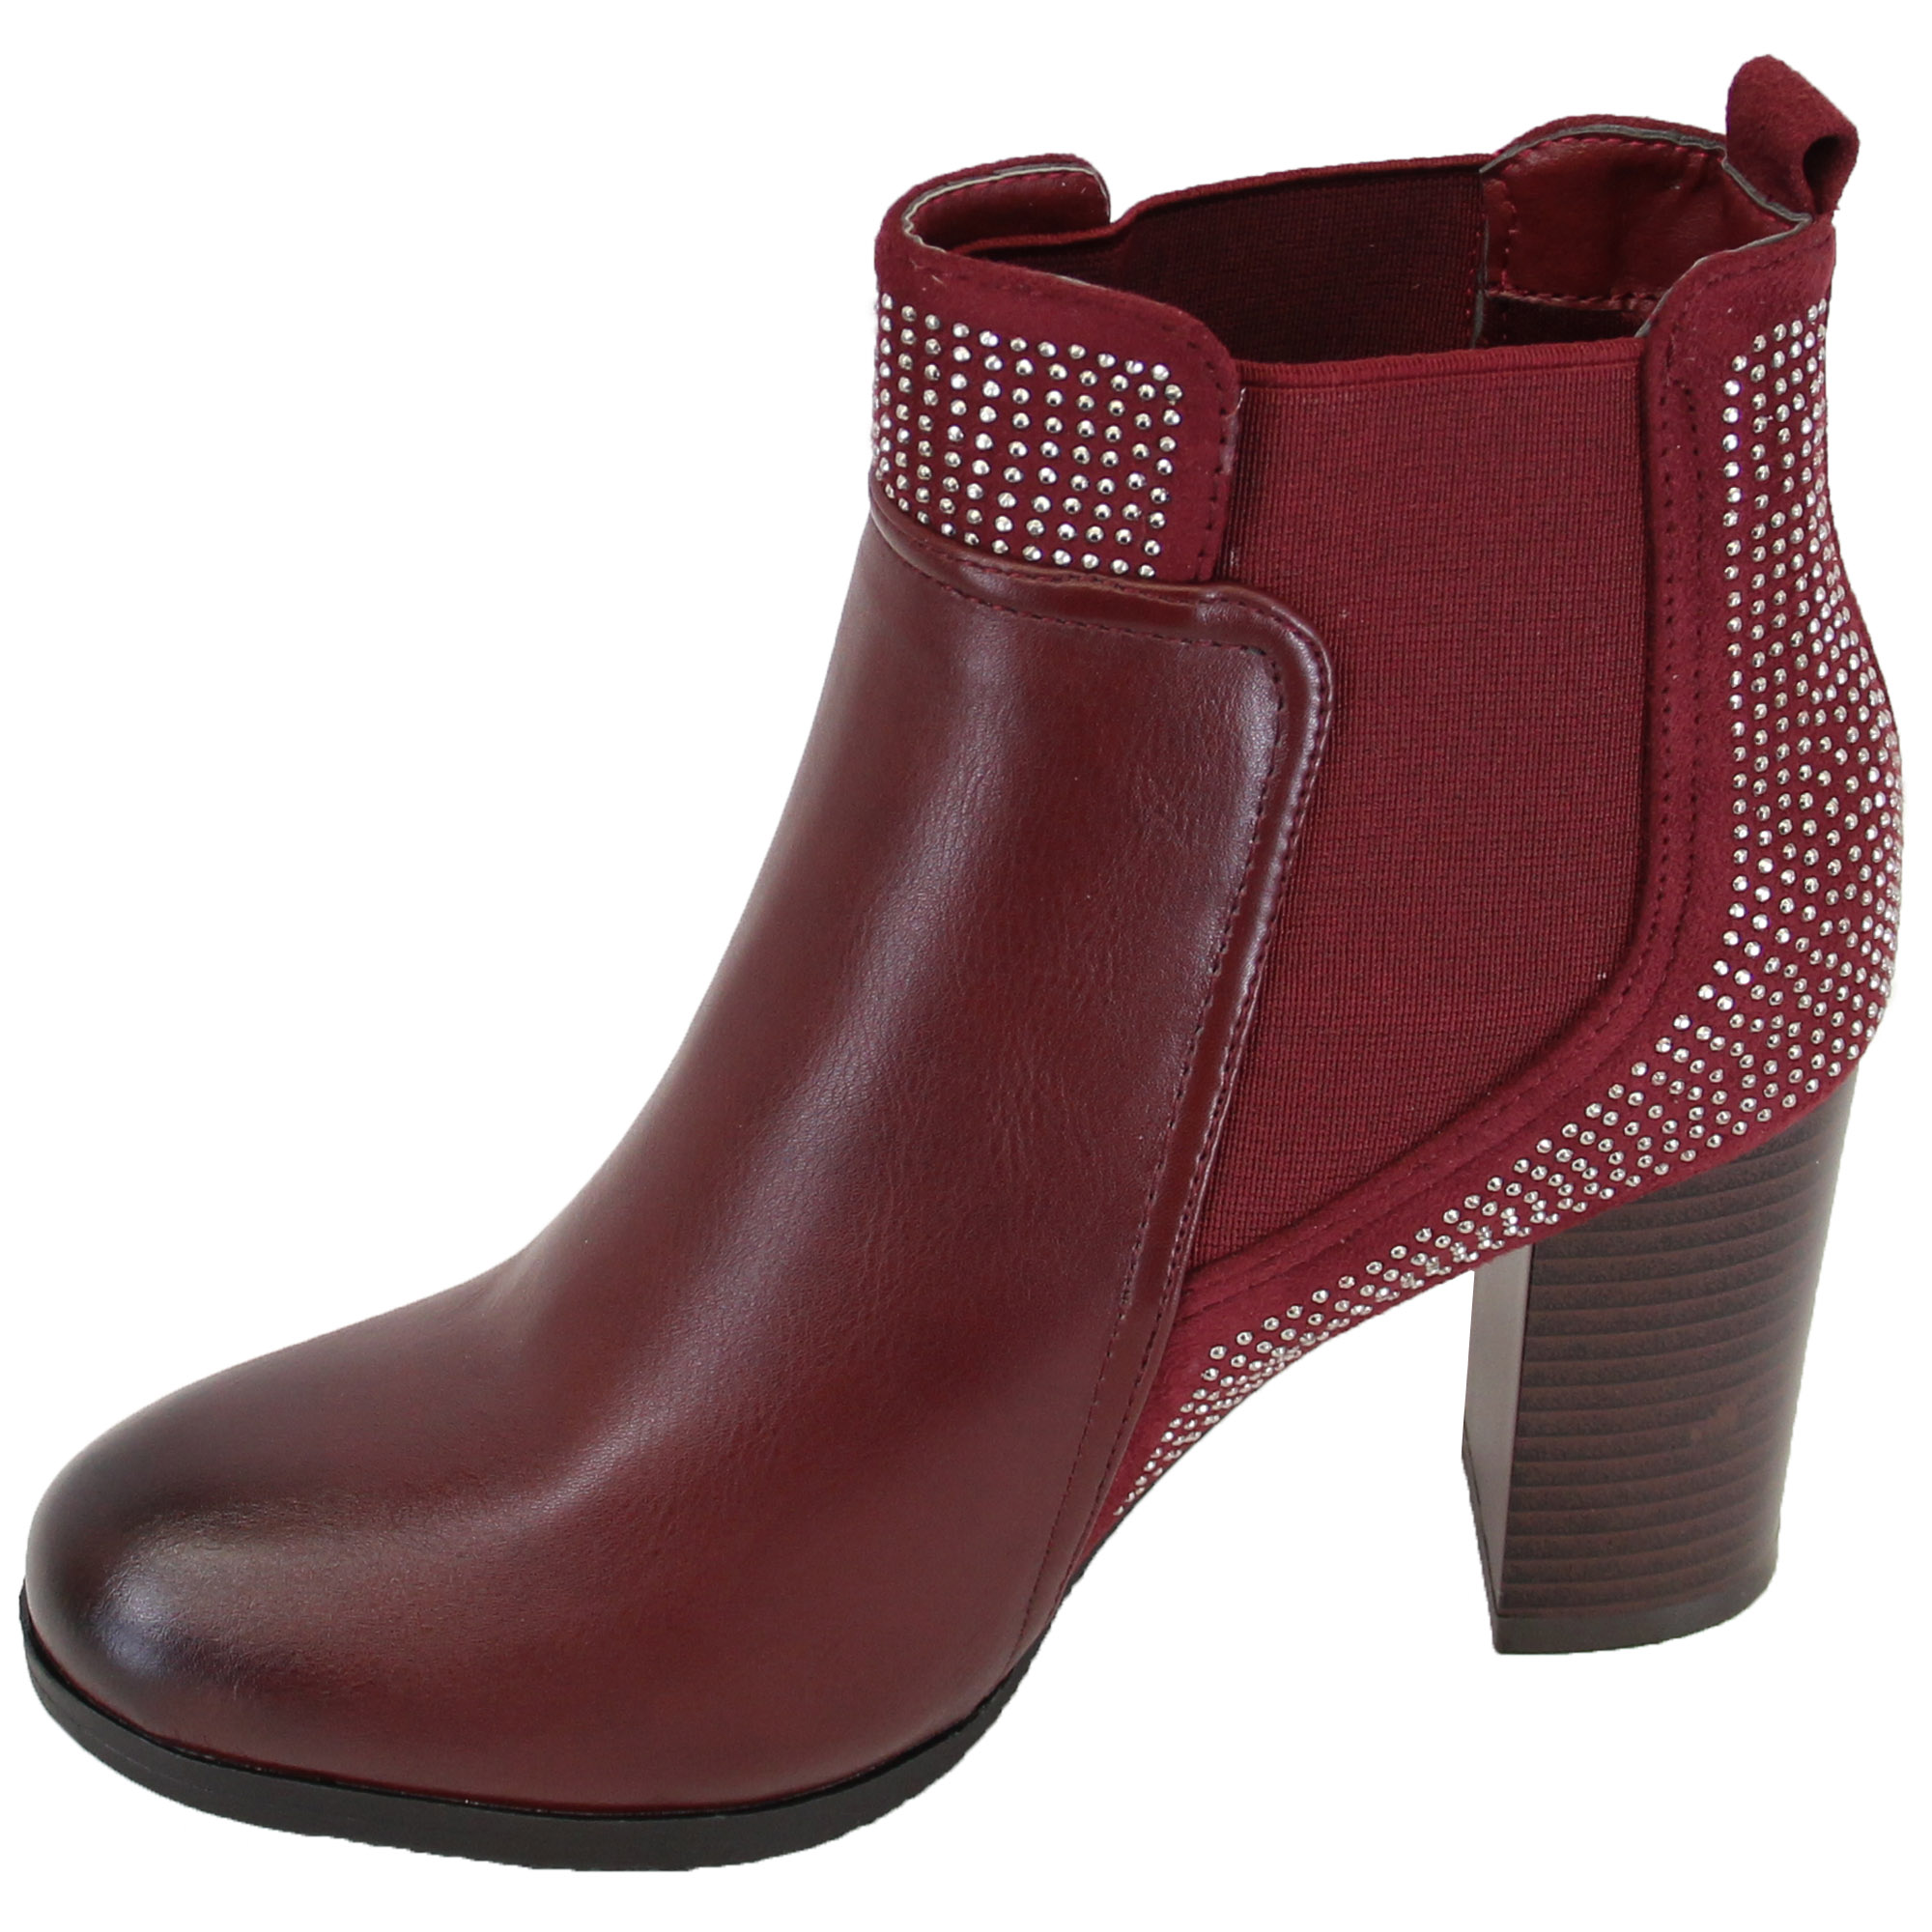 Women's New Look Boots Everyone needs a variety of boots in their closet, that's why New Look makes such a wide range. Expect everything from the classics – like Chelsea boots and lace-ups – to trend-led pairs that have been given an upgrade with metallic finishes, buckles or embellishments.